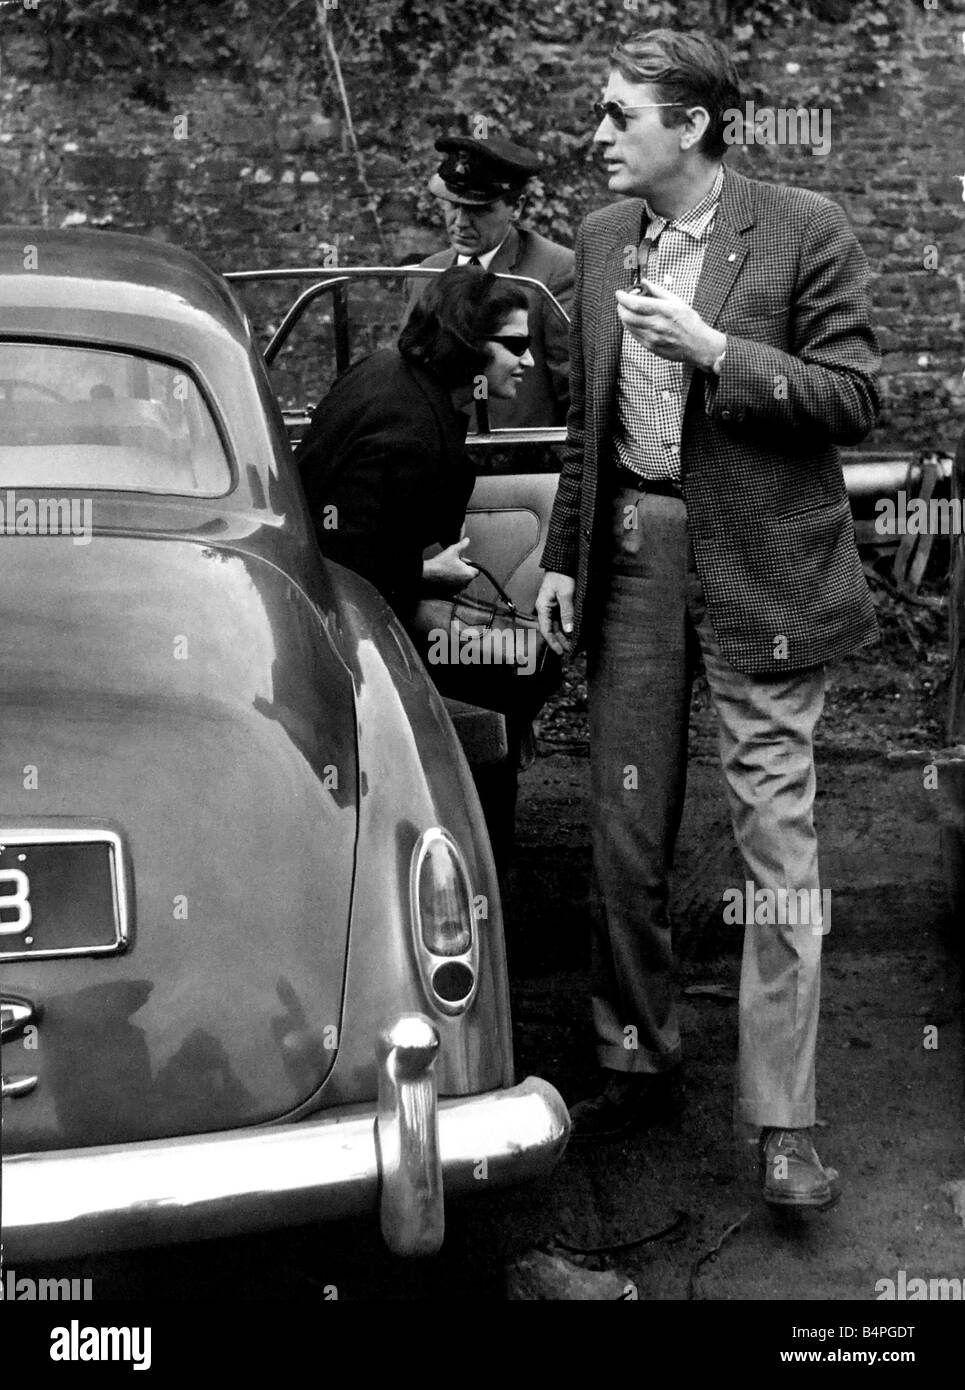 Film star Gregory Peck is pictured arriving at Crumlin yesterday where he is filming scenes for the film Arabesque - Stock Image